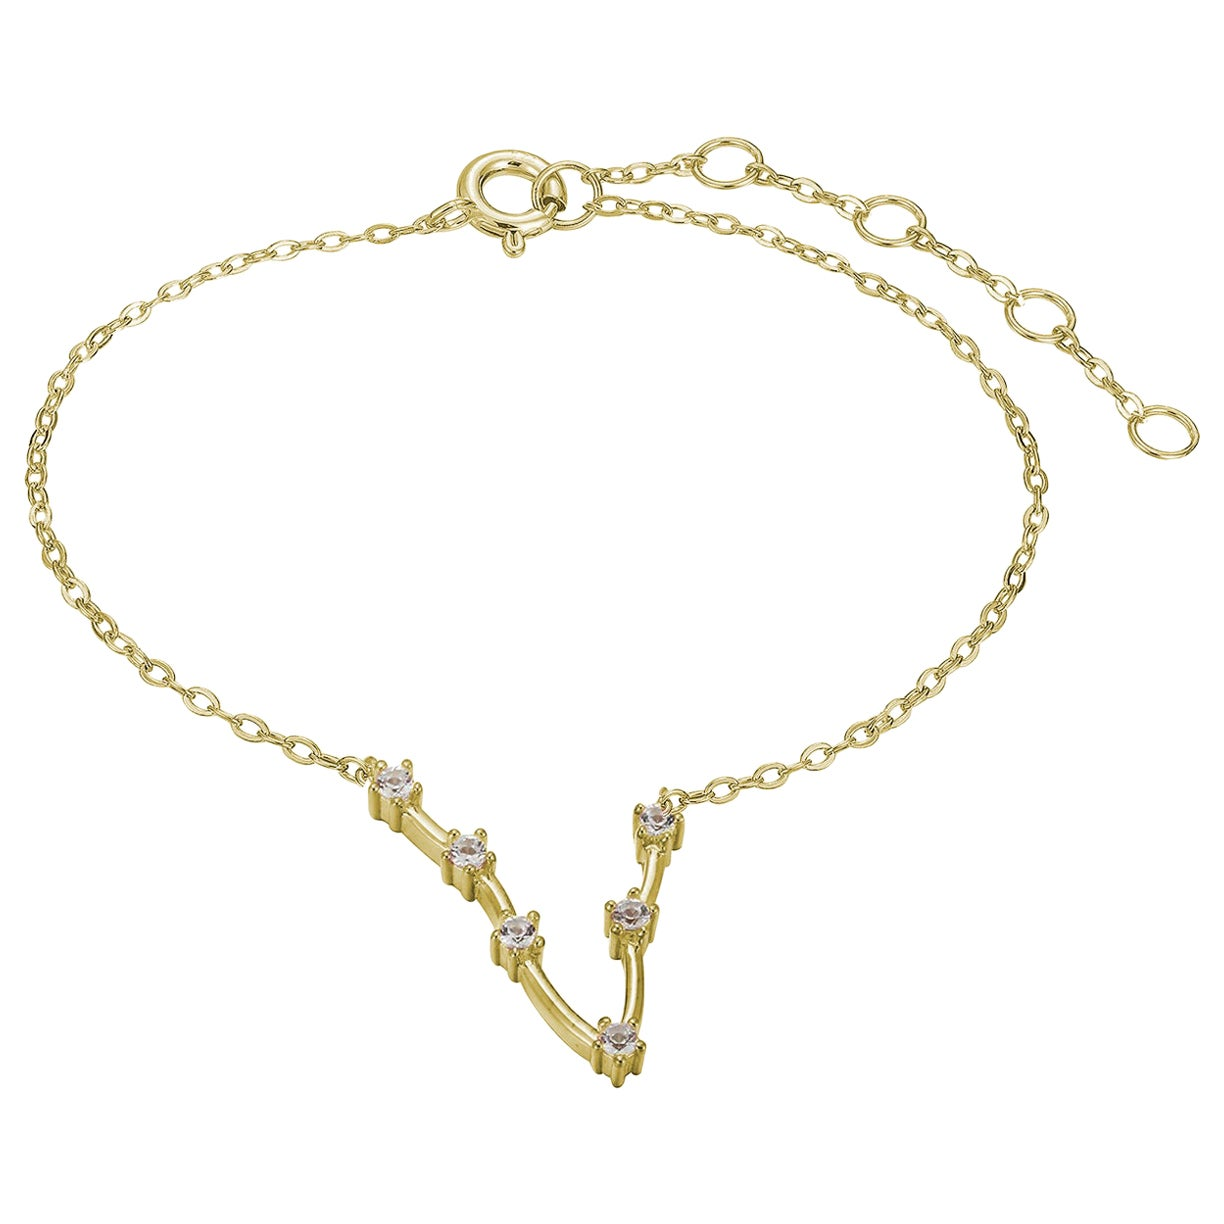 Pisces Constellation Anklet